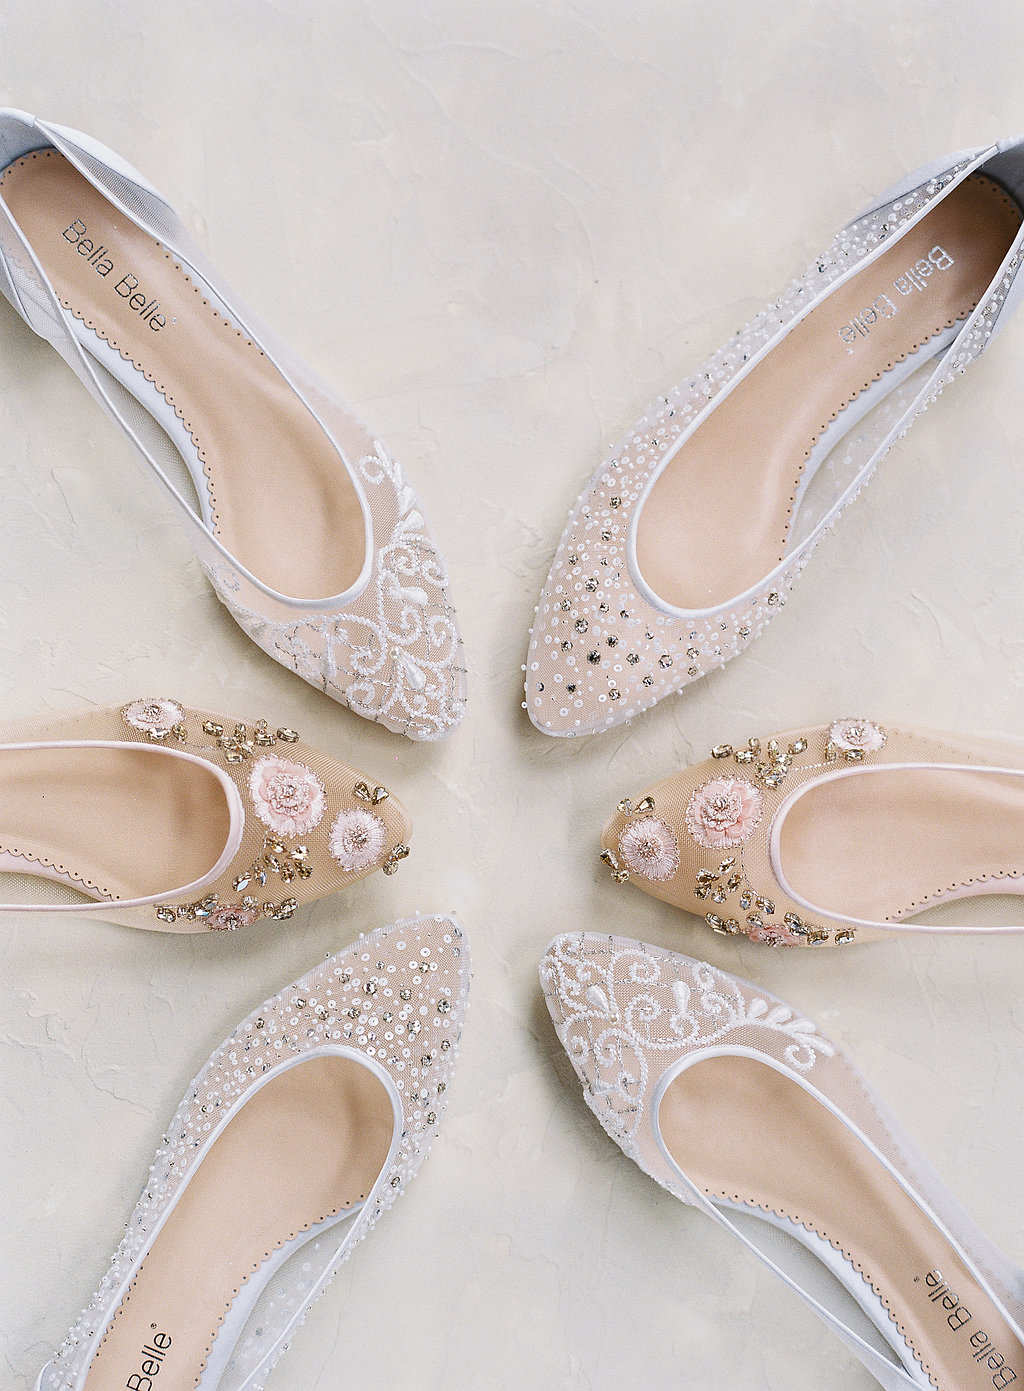 cdc334fe44a Wedding flats for days! Our Bella Belle Euphoria 2018 wedding shoe  collection features flats in ivory and blush. Featuring sparkly crystal  embellishments